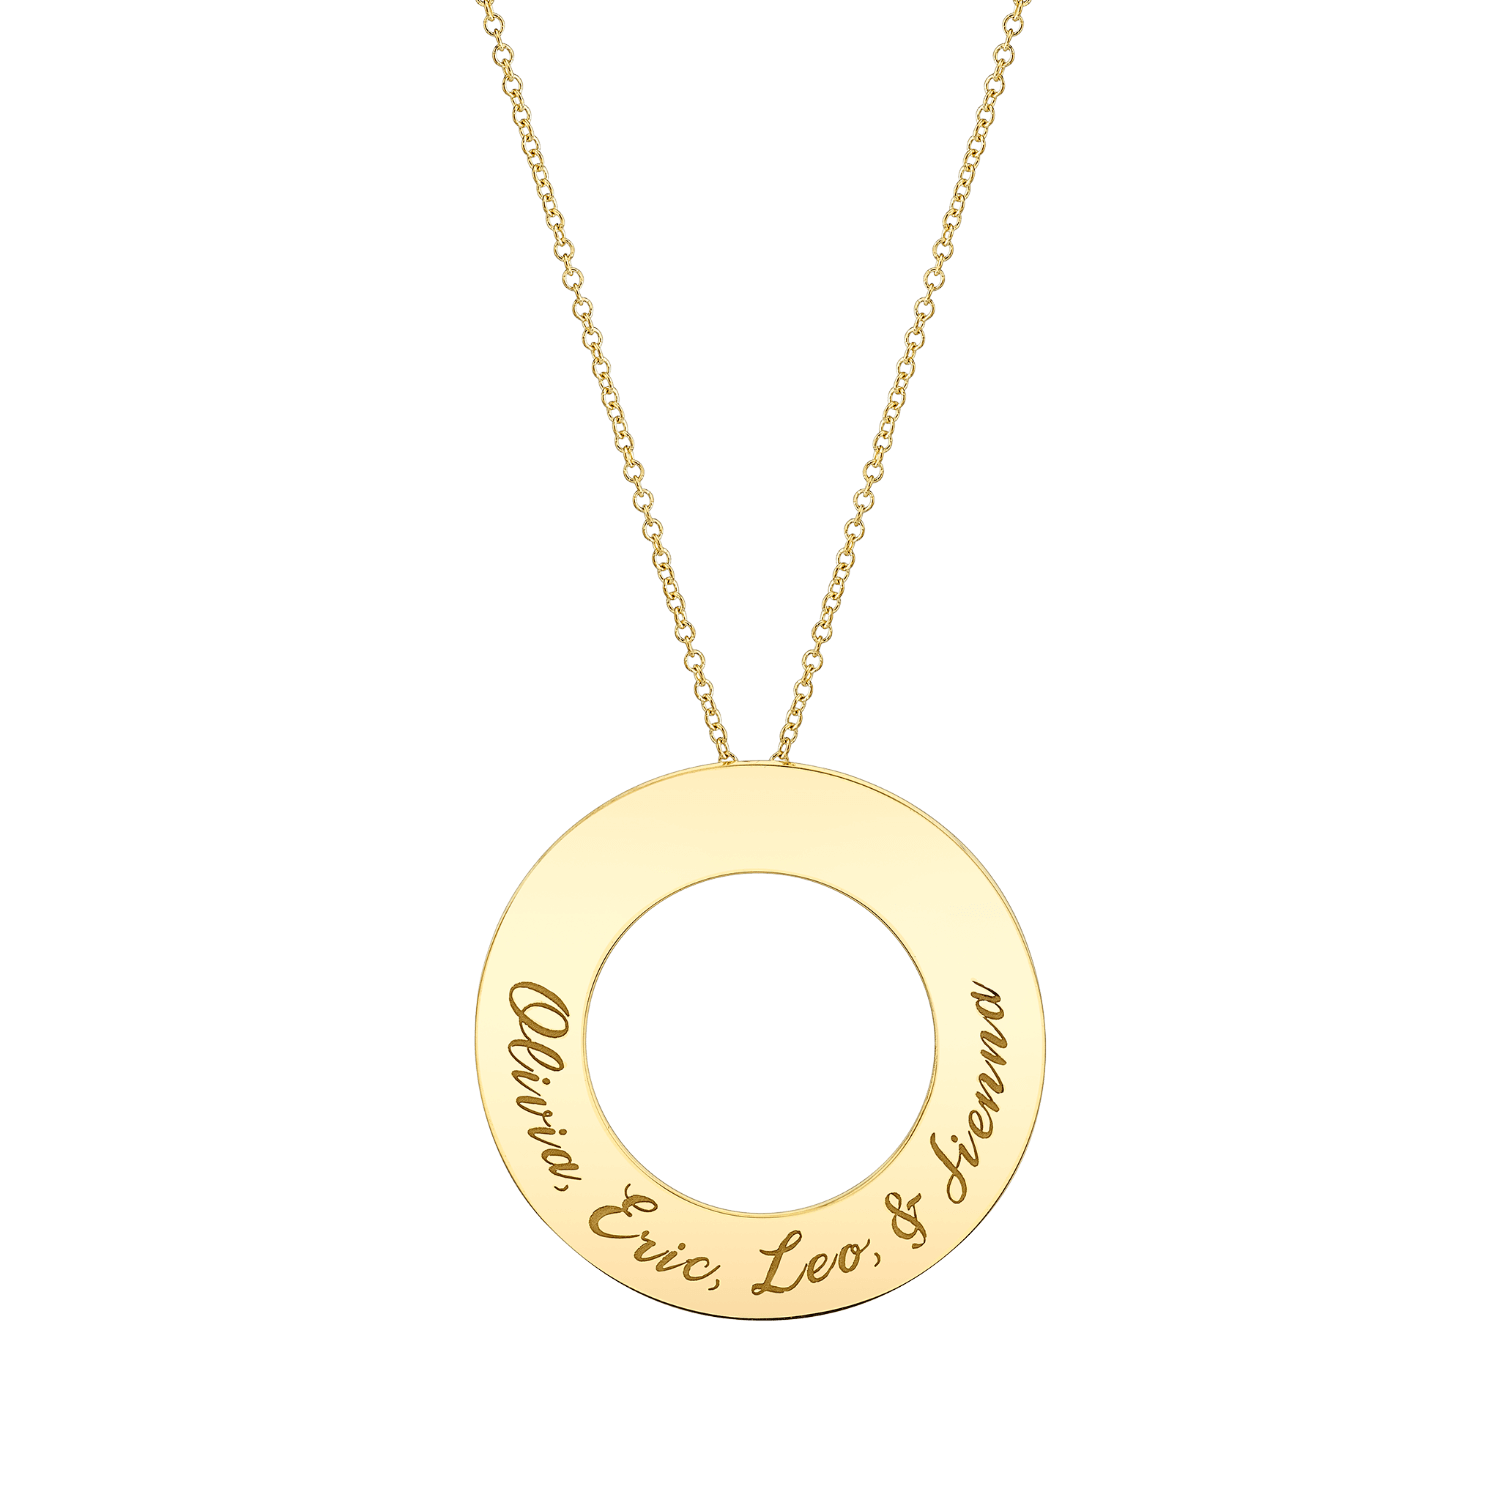 Engraved Circle Disc Necklace